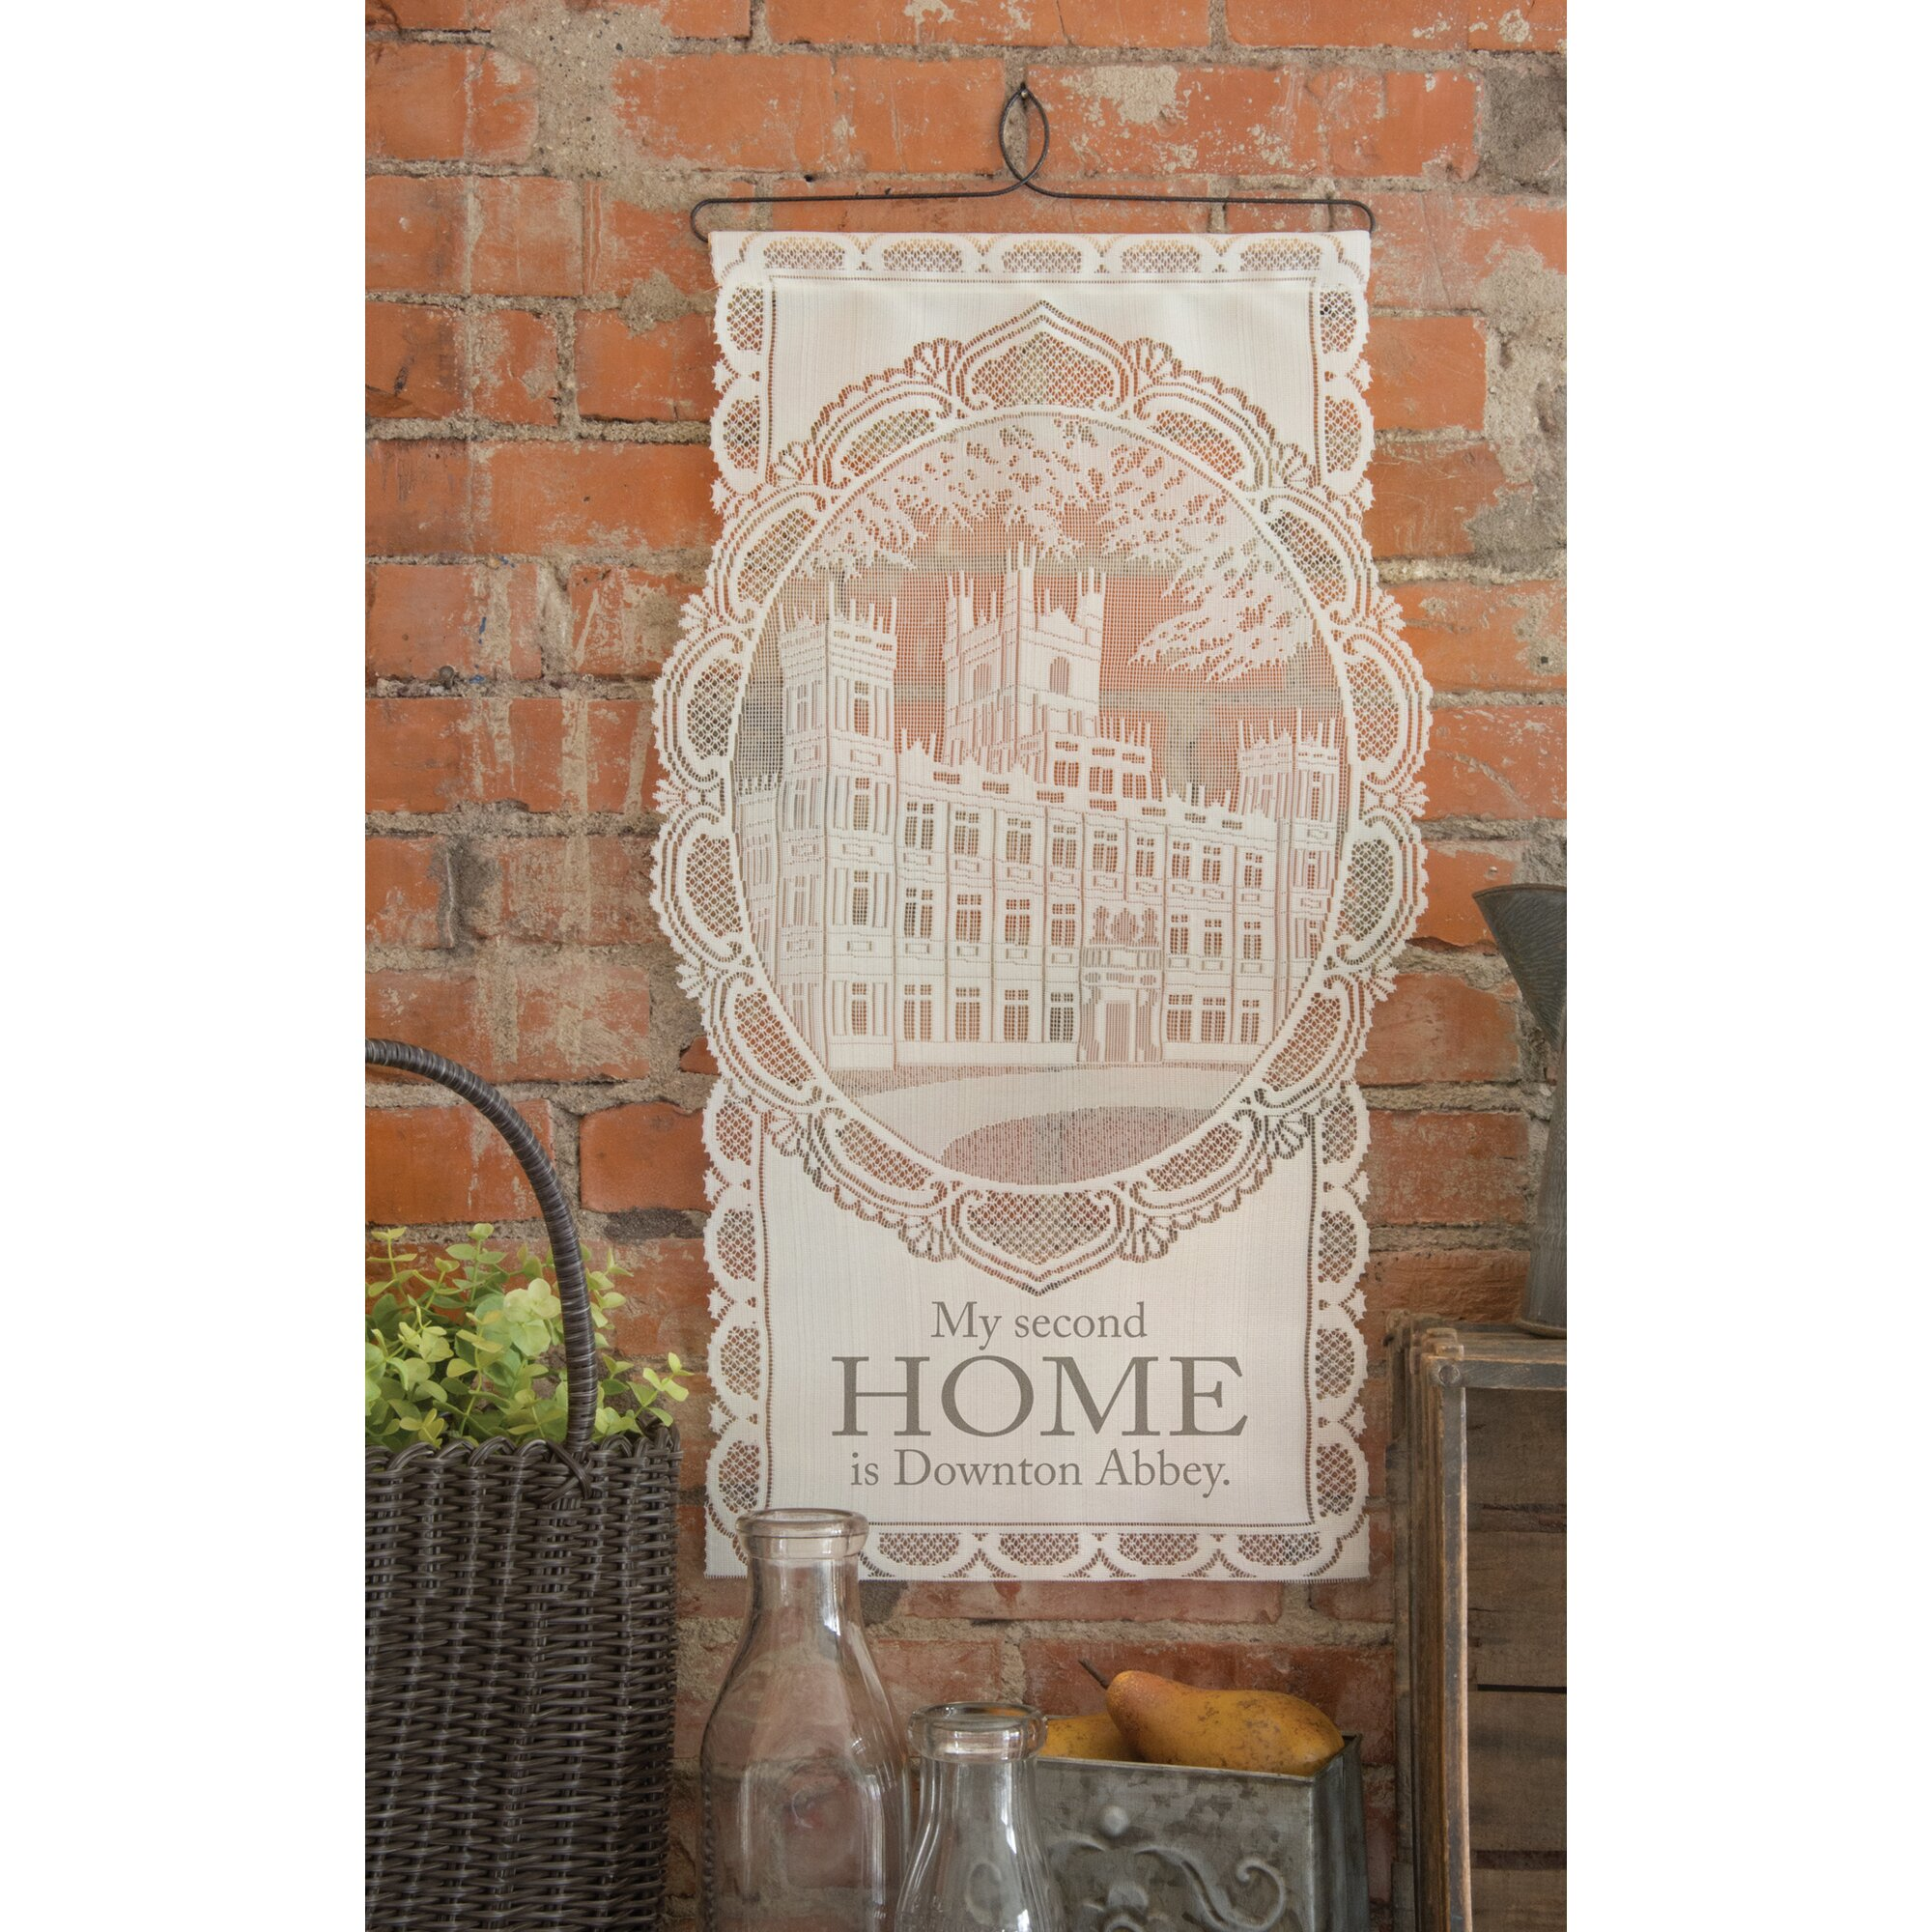 Heritage Lace Downton Abbey Second Home Wall Decor Home Decorators Catalog Best Ideas of Home Decor and Design [homedecoratorscatalog.us]